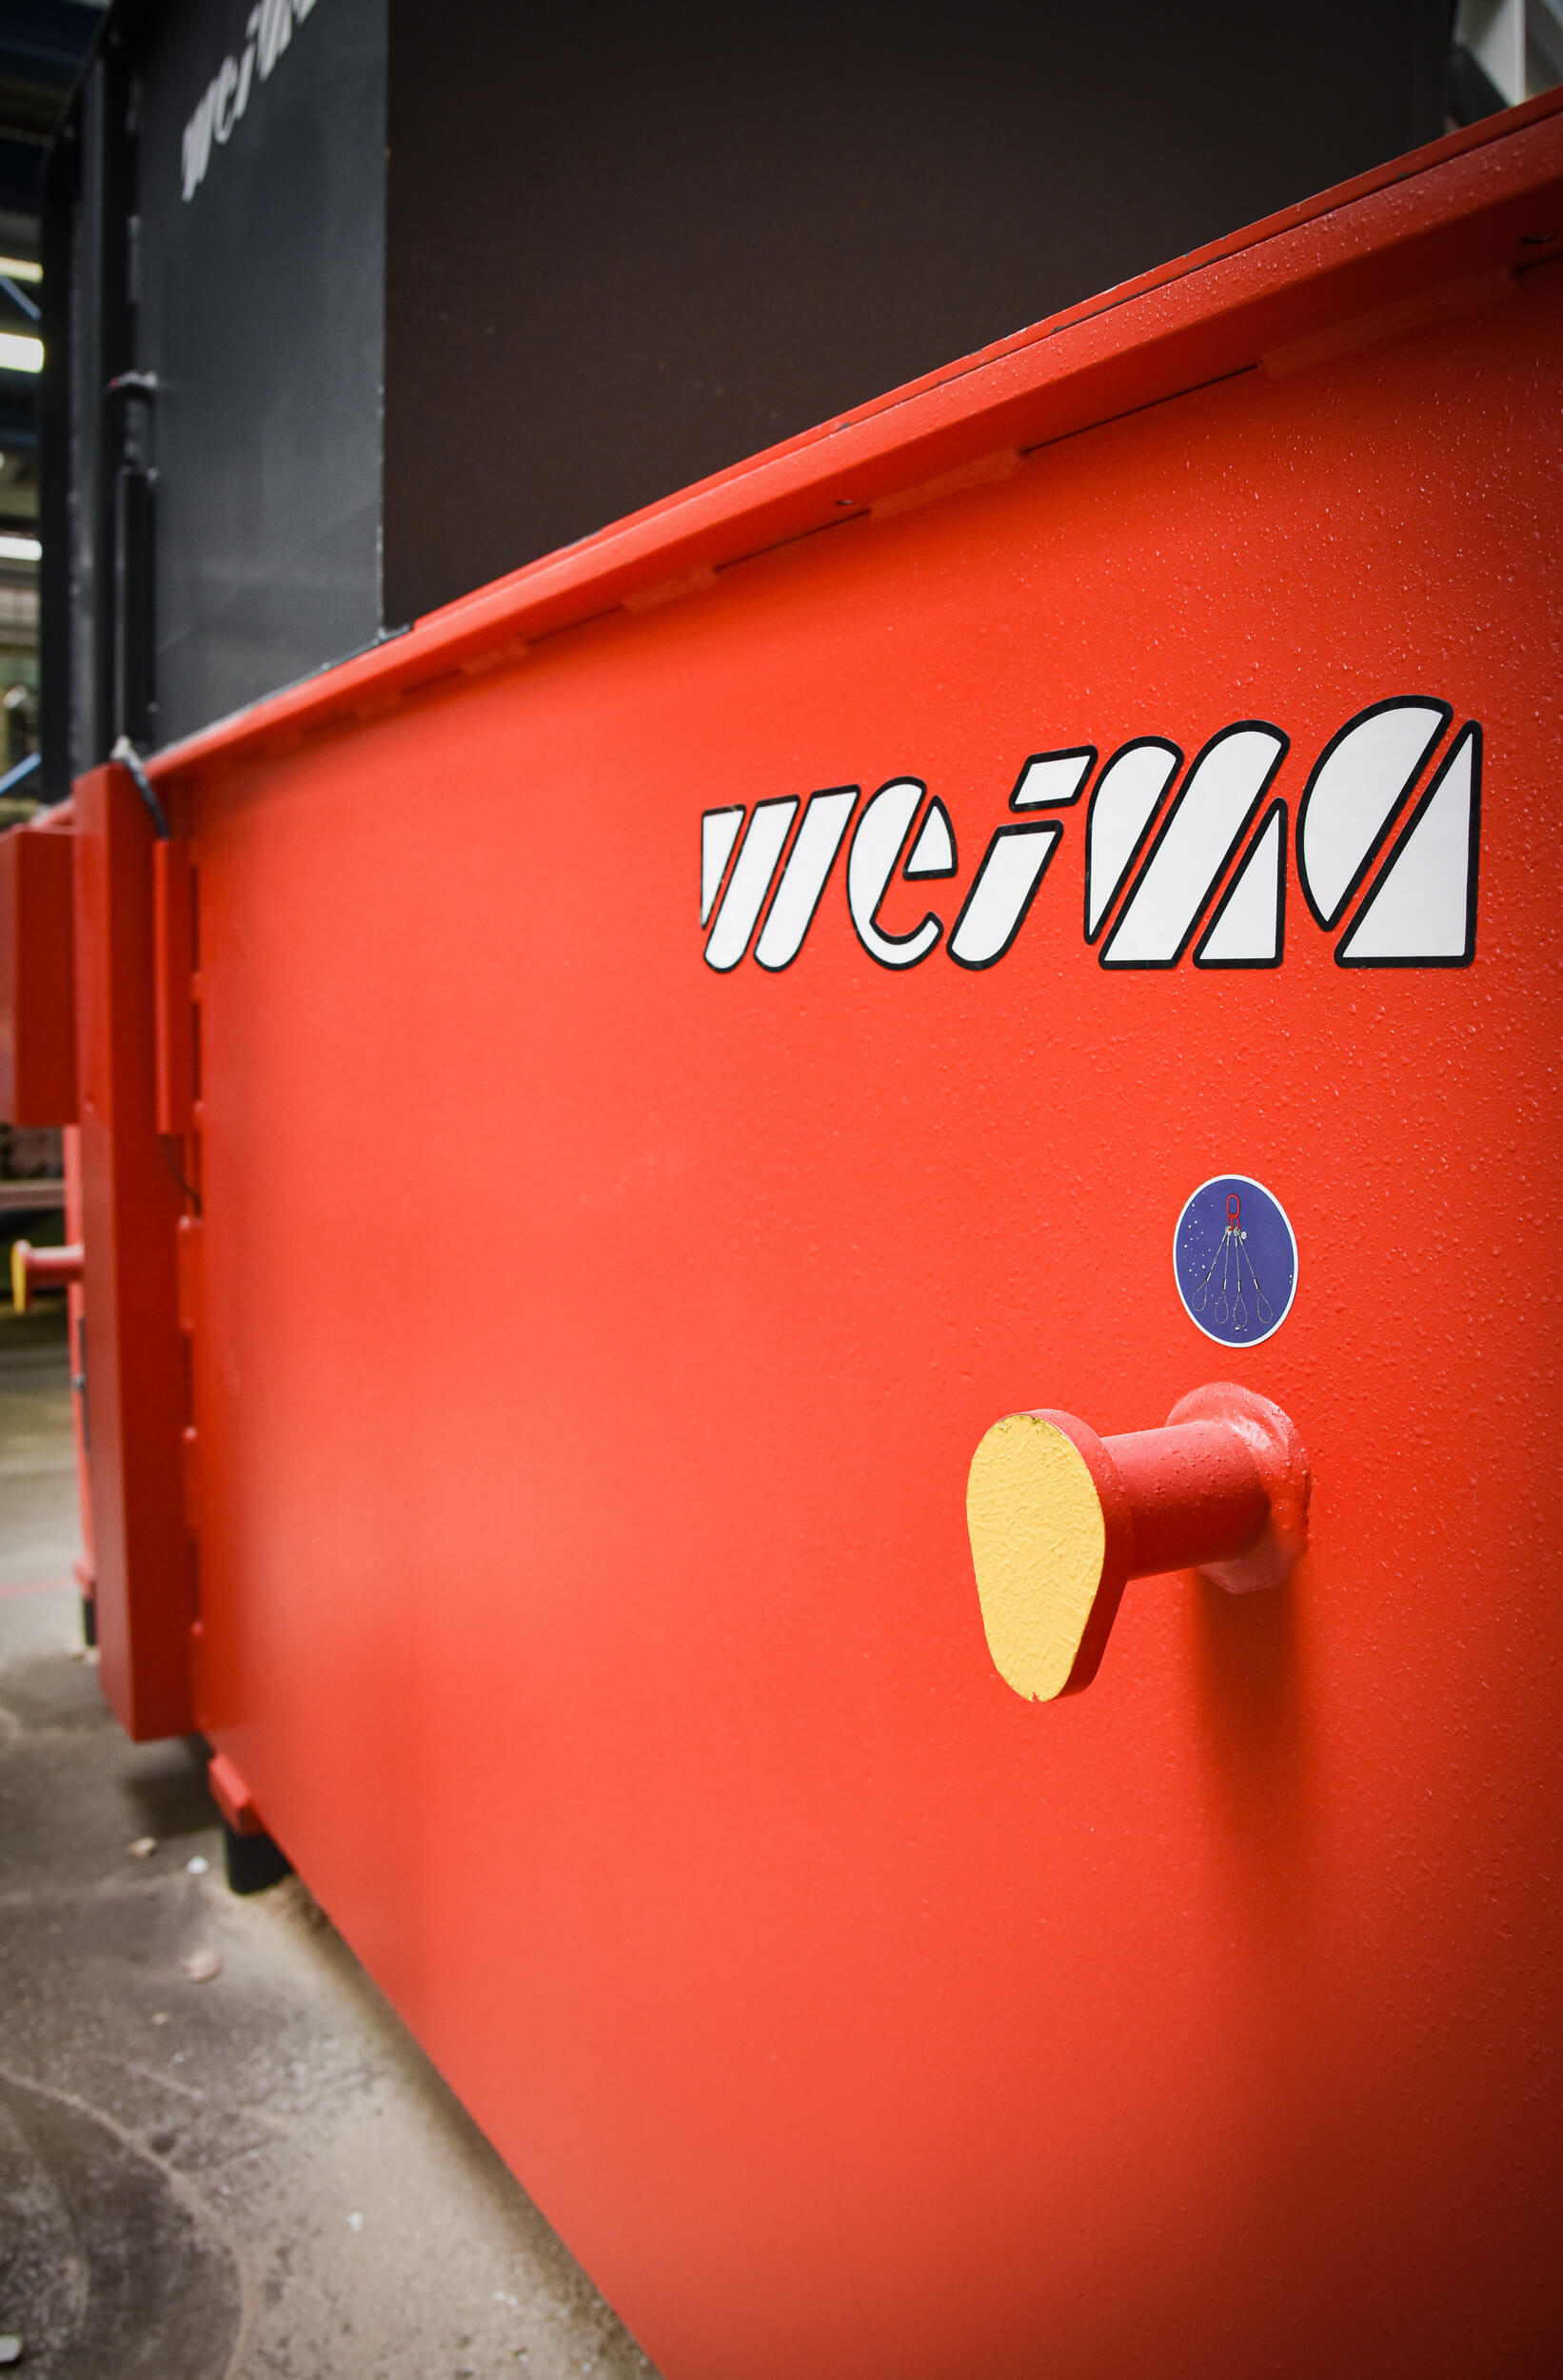 Sustainability at its best with a WEIMA shredder